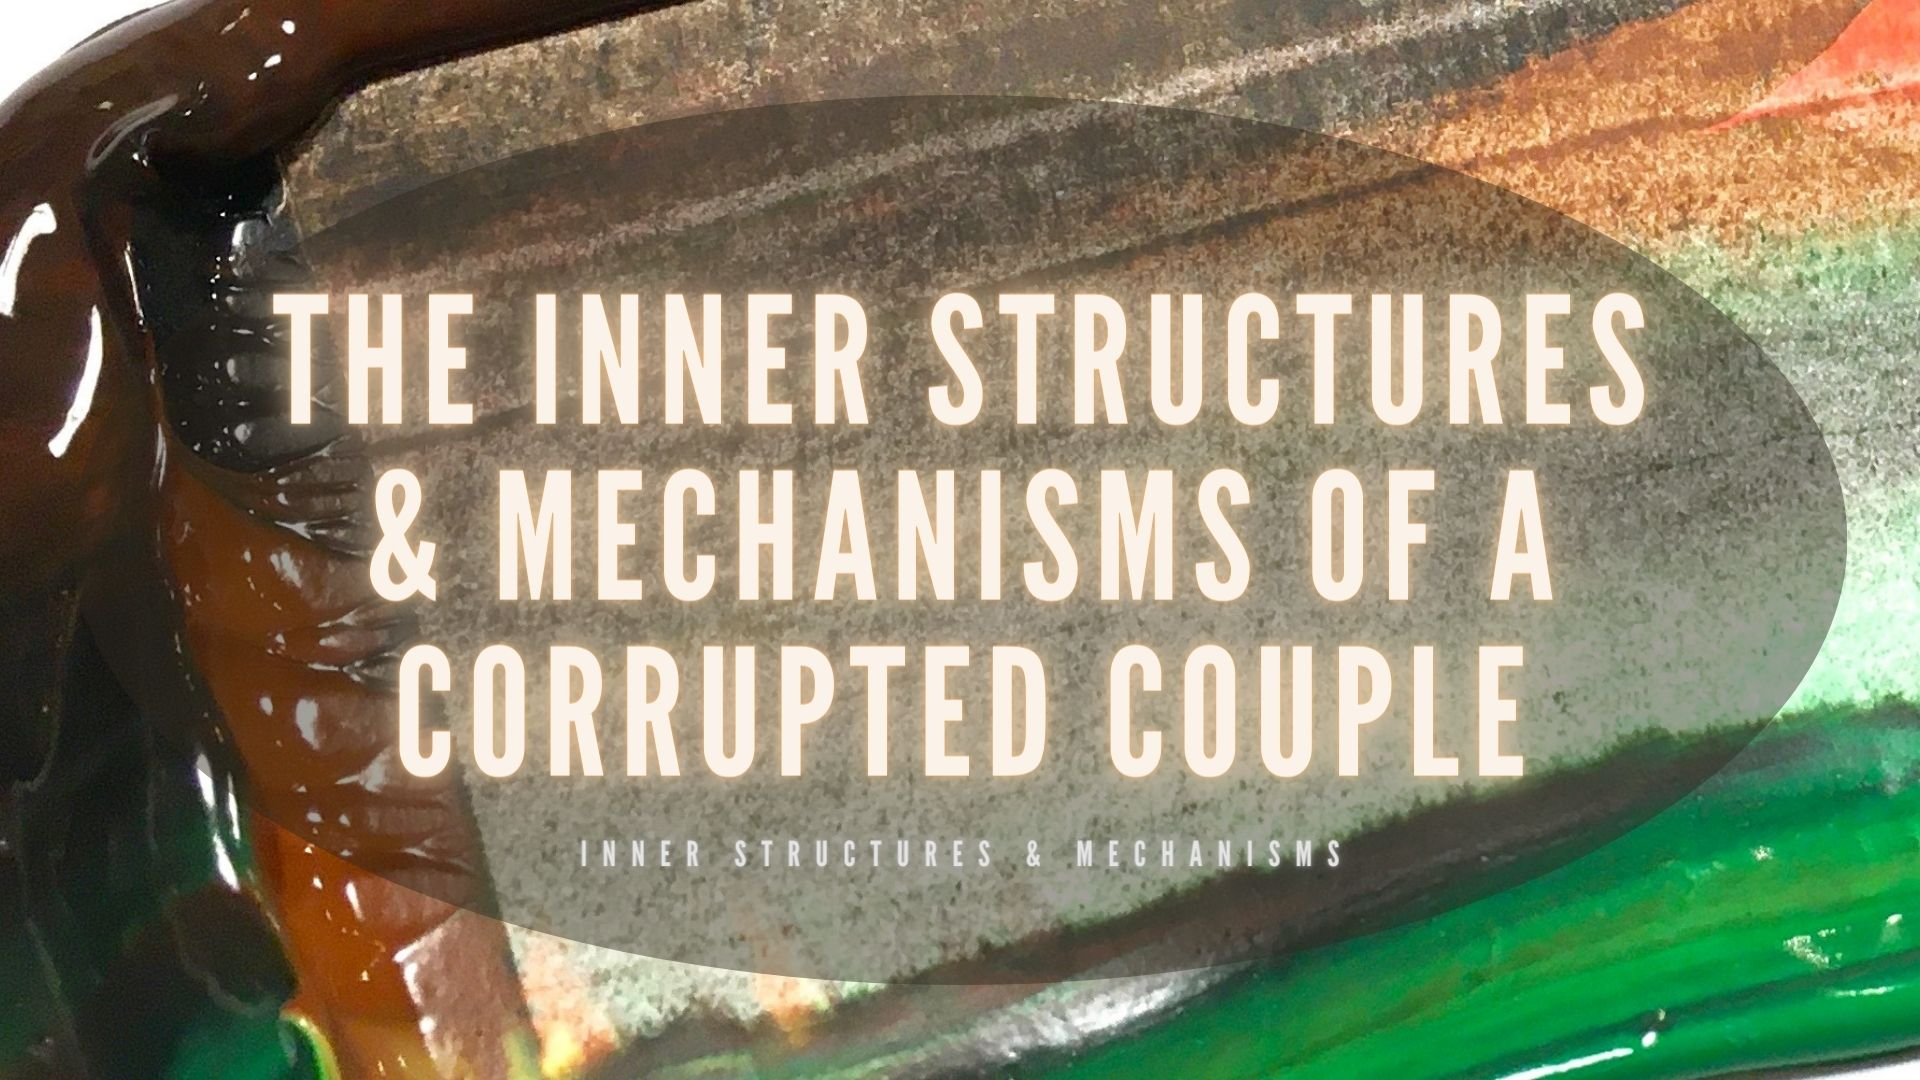 THE STRUCTURES AND MECHANISMS OF A  CORRUPTED COUPLE | Corruption